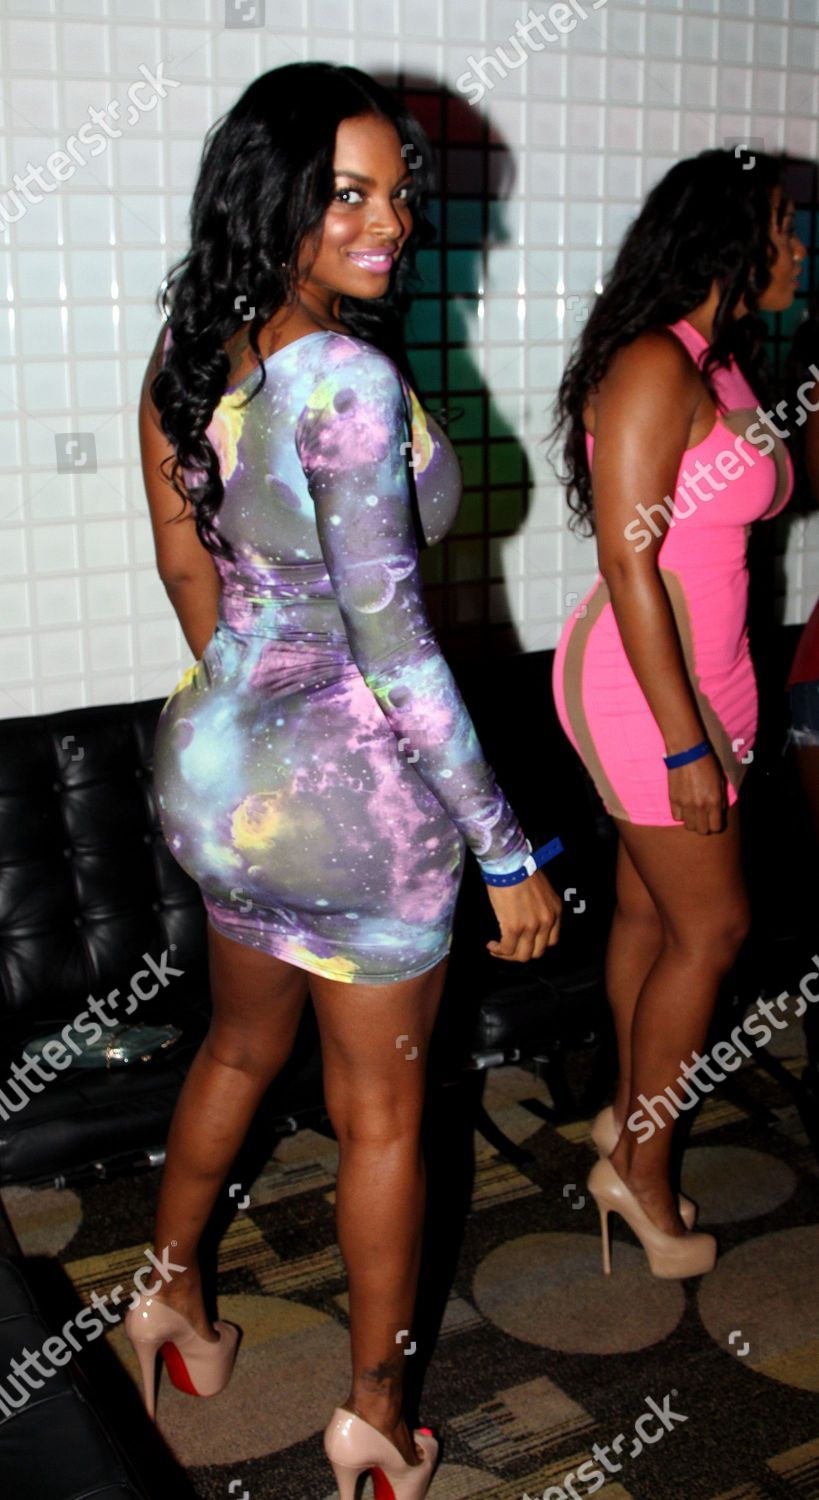 Bailey Brooke reality star cover model brooke bailey attends editorial